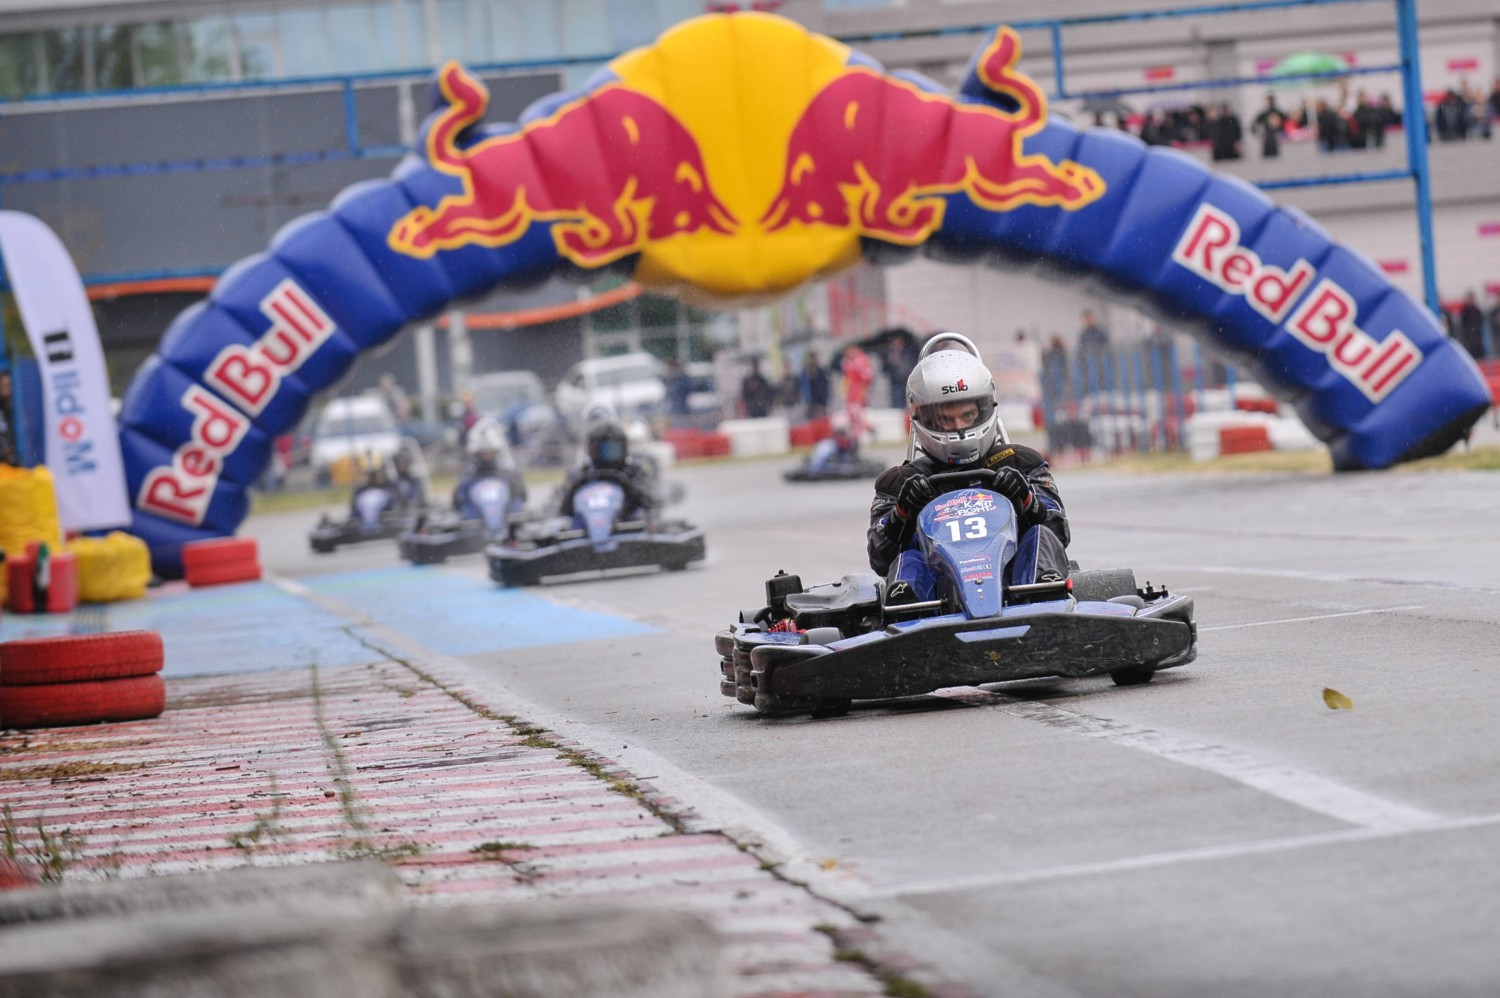 Participants perform during the Red Bull Kart Fight National Final in Plovdiv, Bulgaria on 30th of September 2017 © RedBull Content Pool